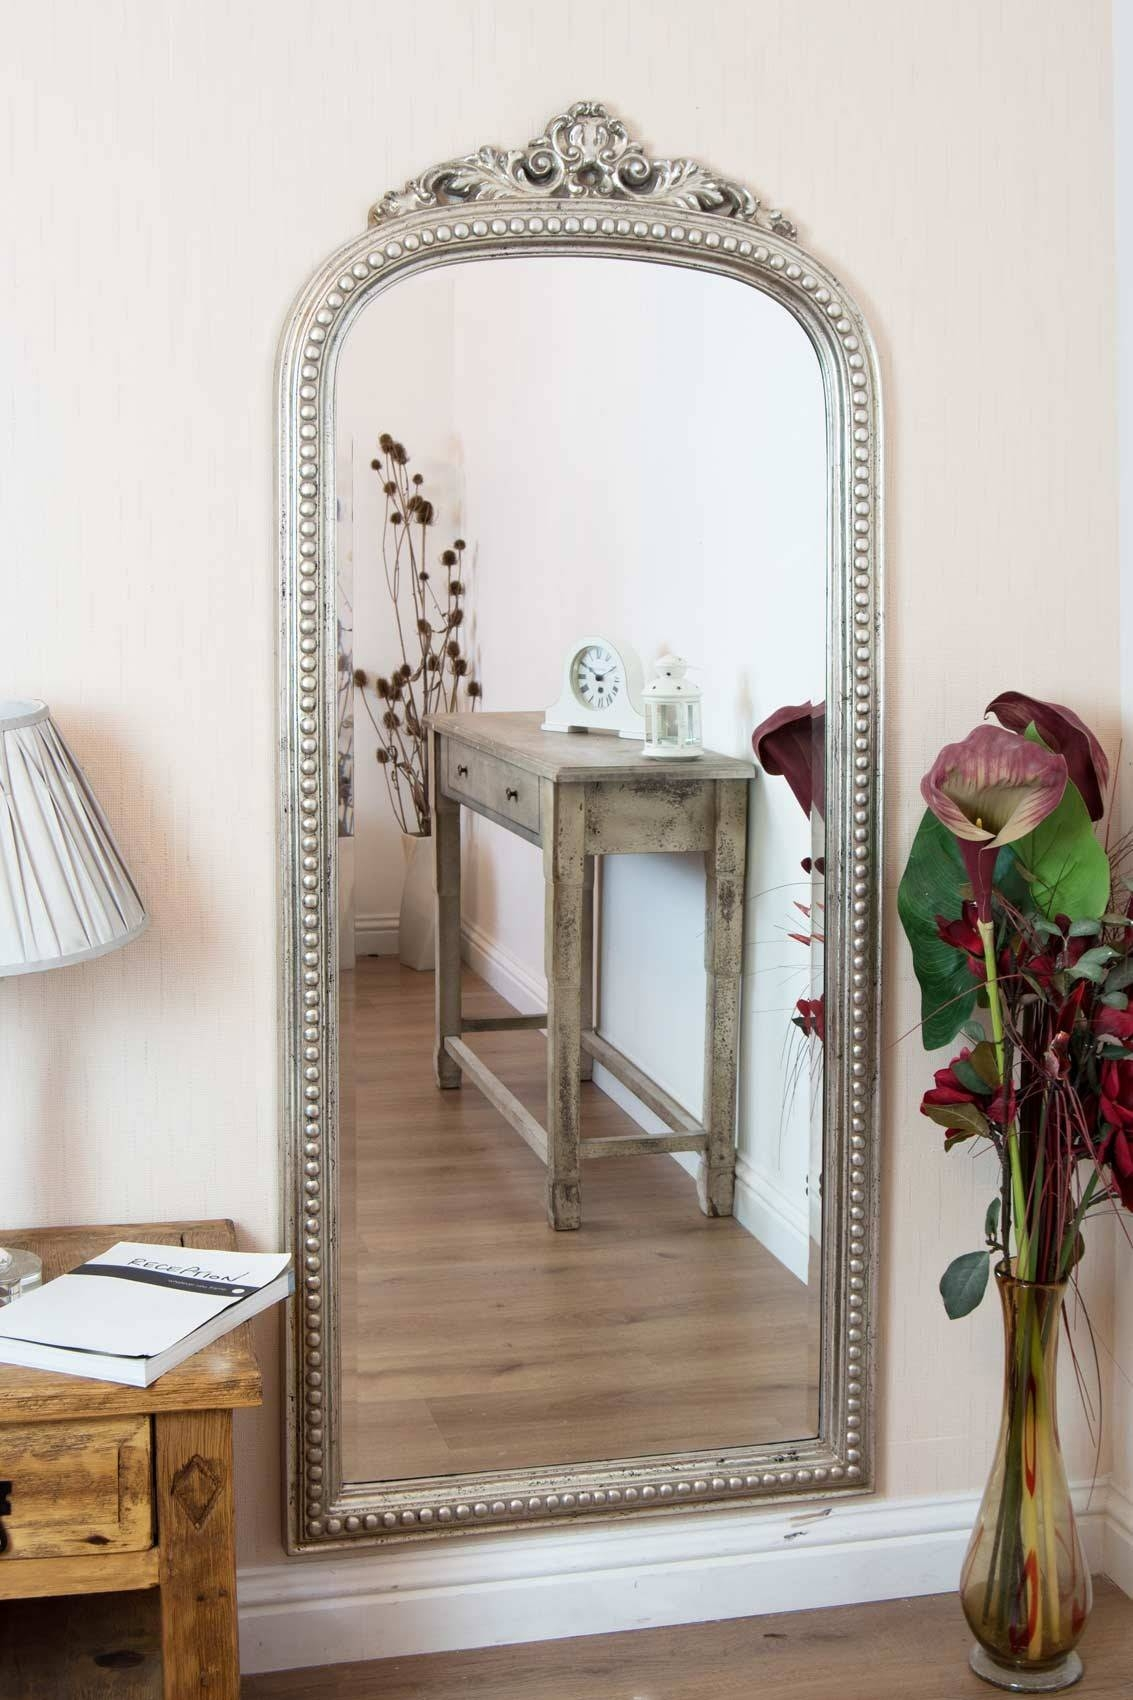 Shabby Chic Wall Mirror 130 Inspiring Style For Fabulous Large in Silver Ornate Wall Mirrors (Image 24 of 25)